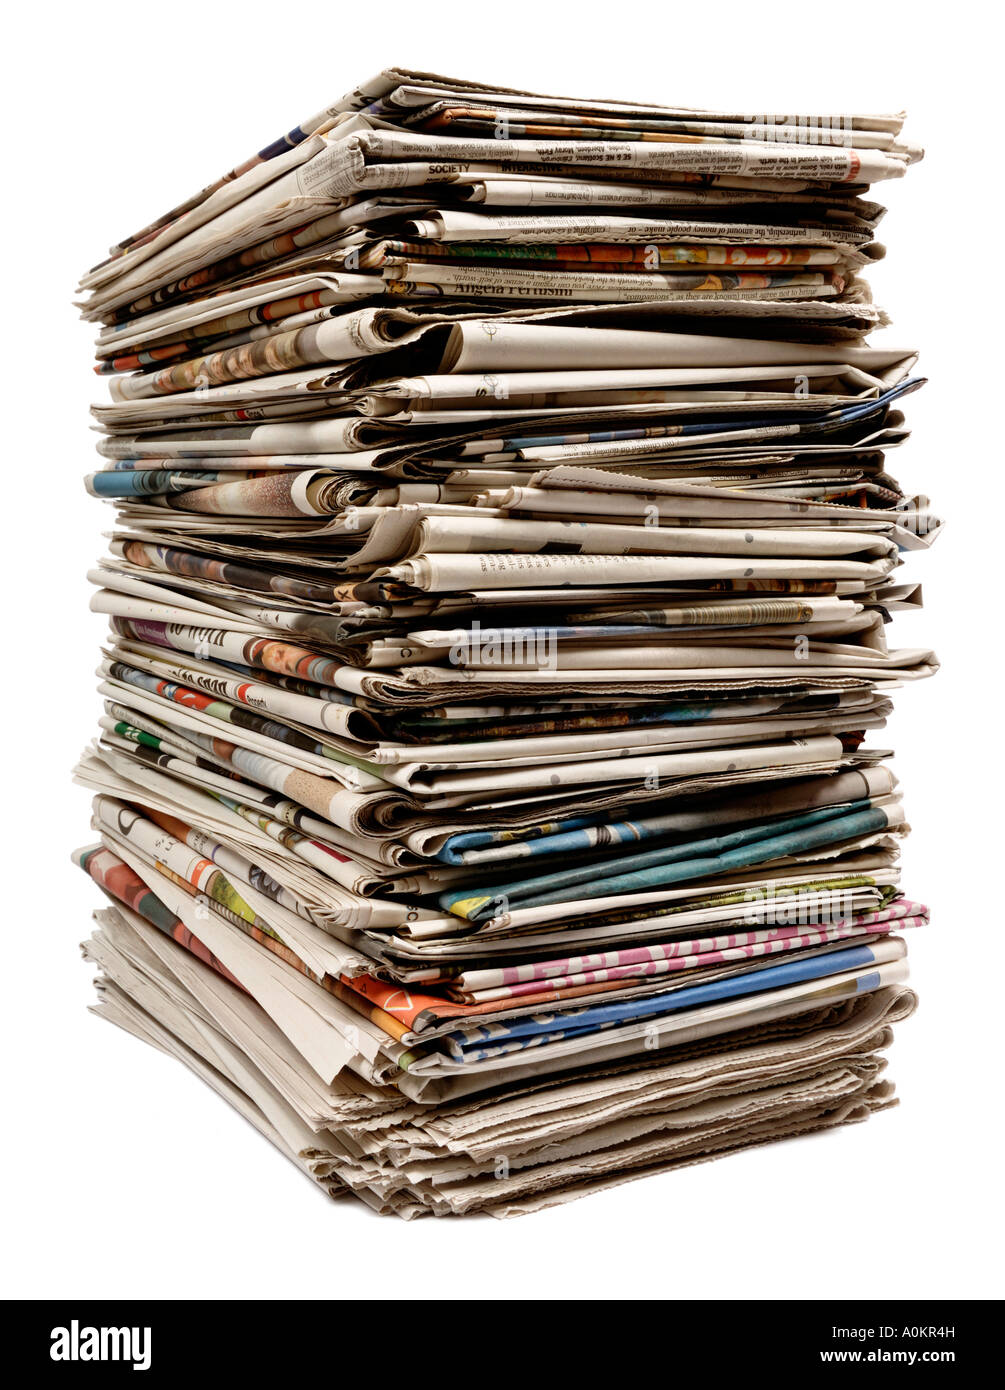 Old newspapers - Stock Image